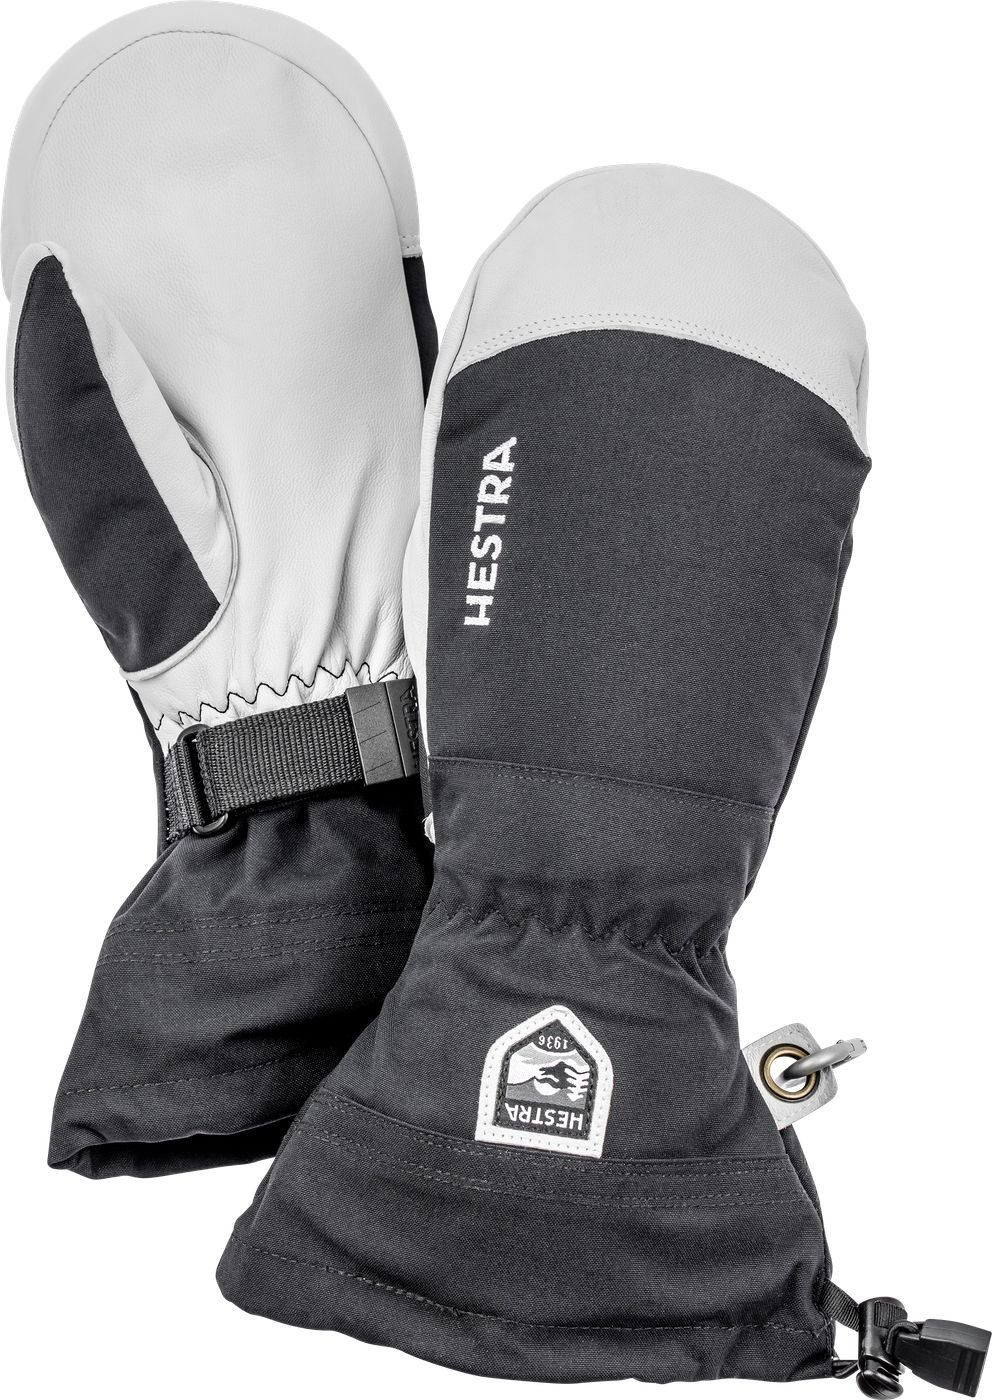 Hestra Mens and Womes Ski Gloves: Army Leather Wind-Proof Water ResisTant Winter Mitten, Black, 10 by Hestra